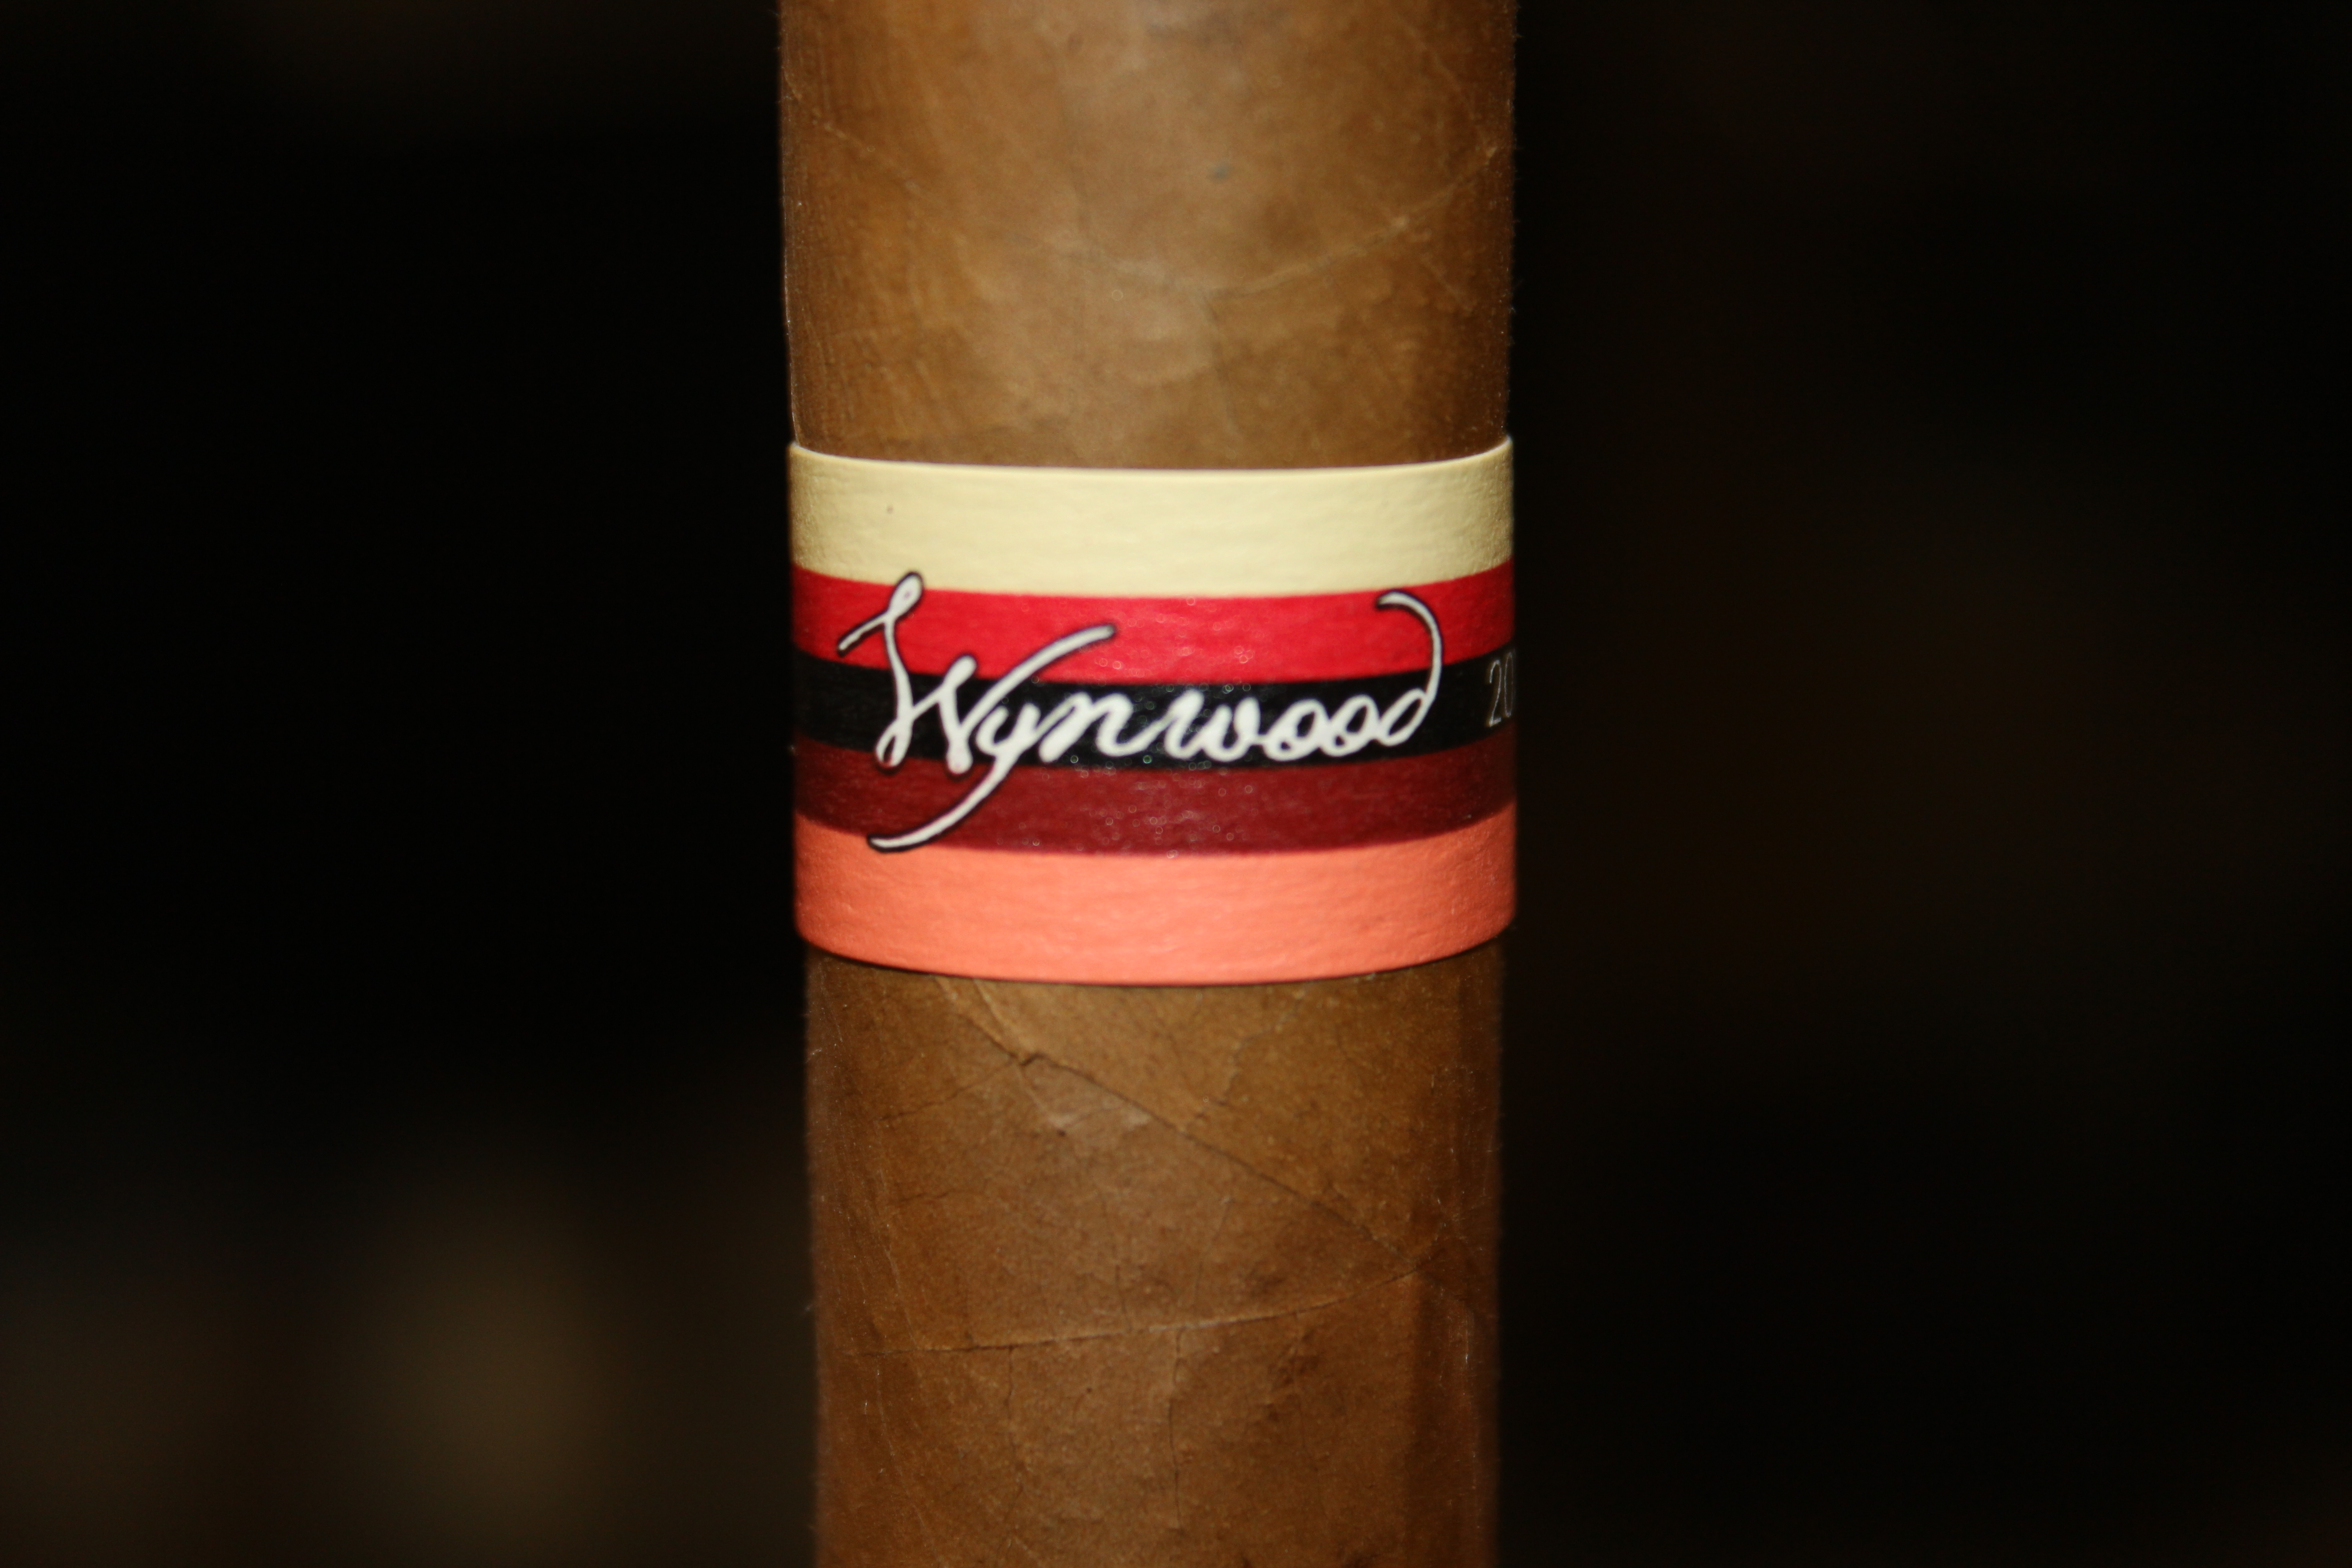 Wynwood – Cigar Review